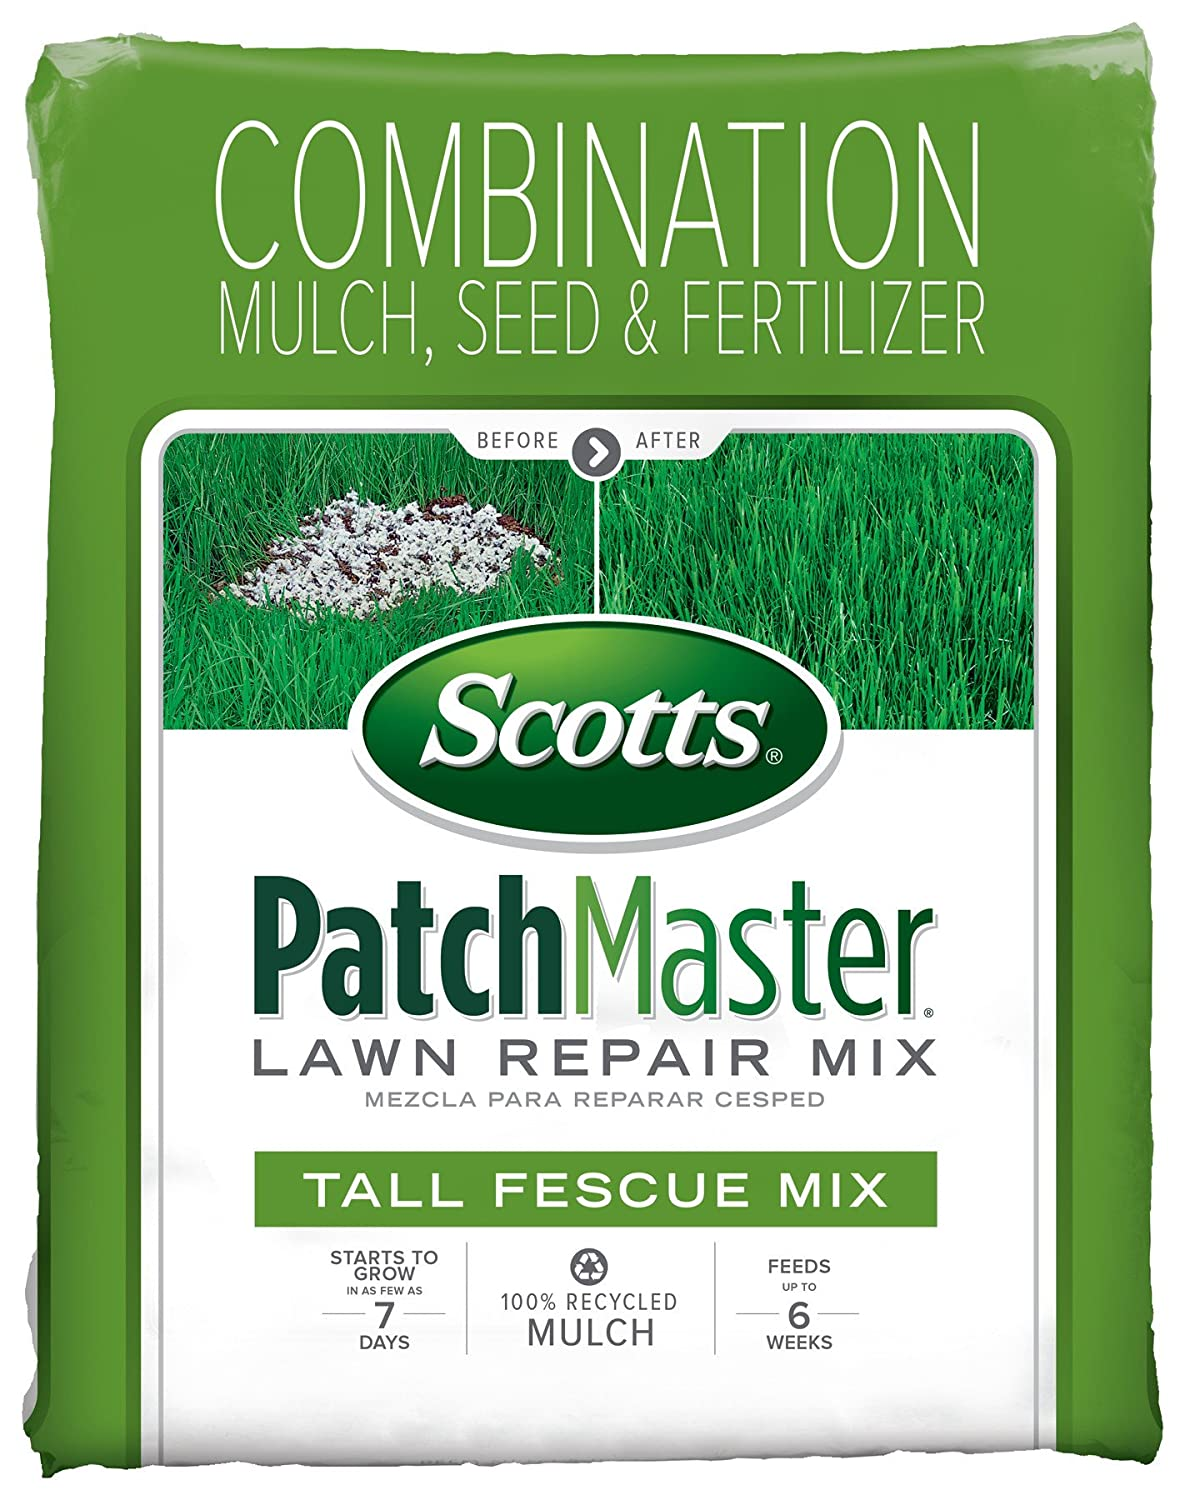 Scotts PatchMaster Lawn Repair Mix Image 1